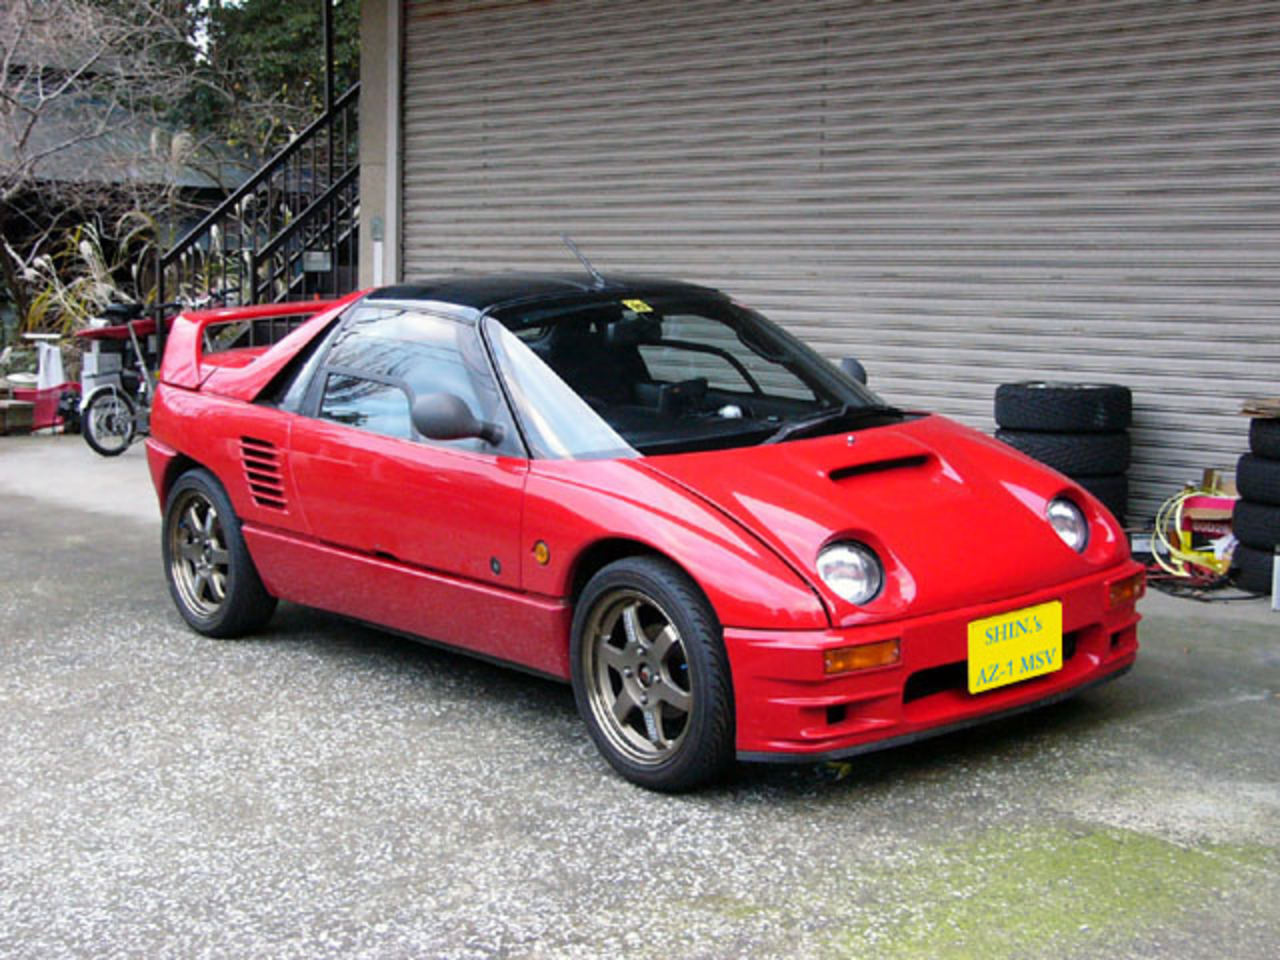 In a recent publication by Jalopnik.com., the Mazda Autozam AZ-1 was voted